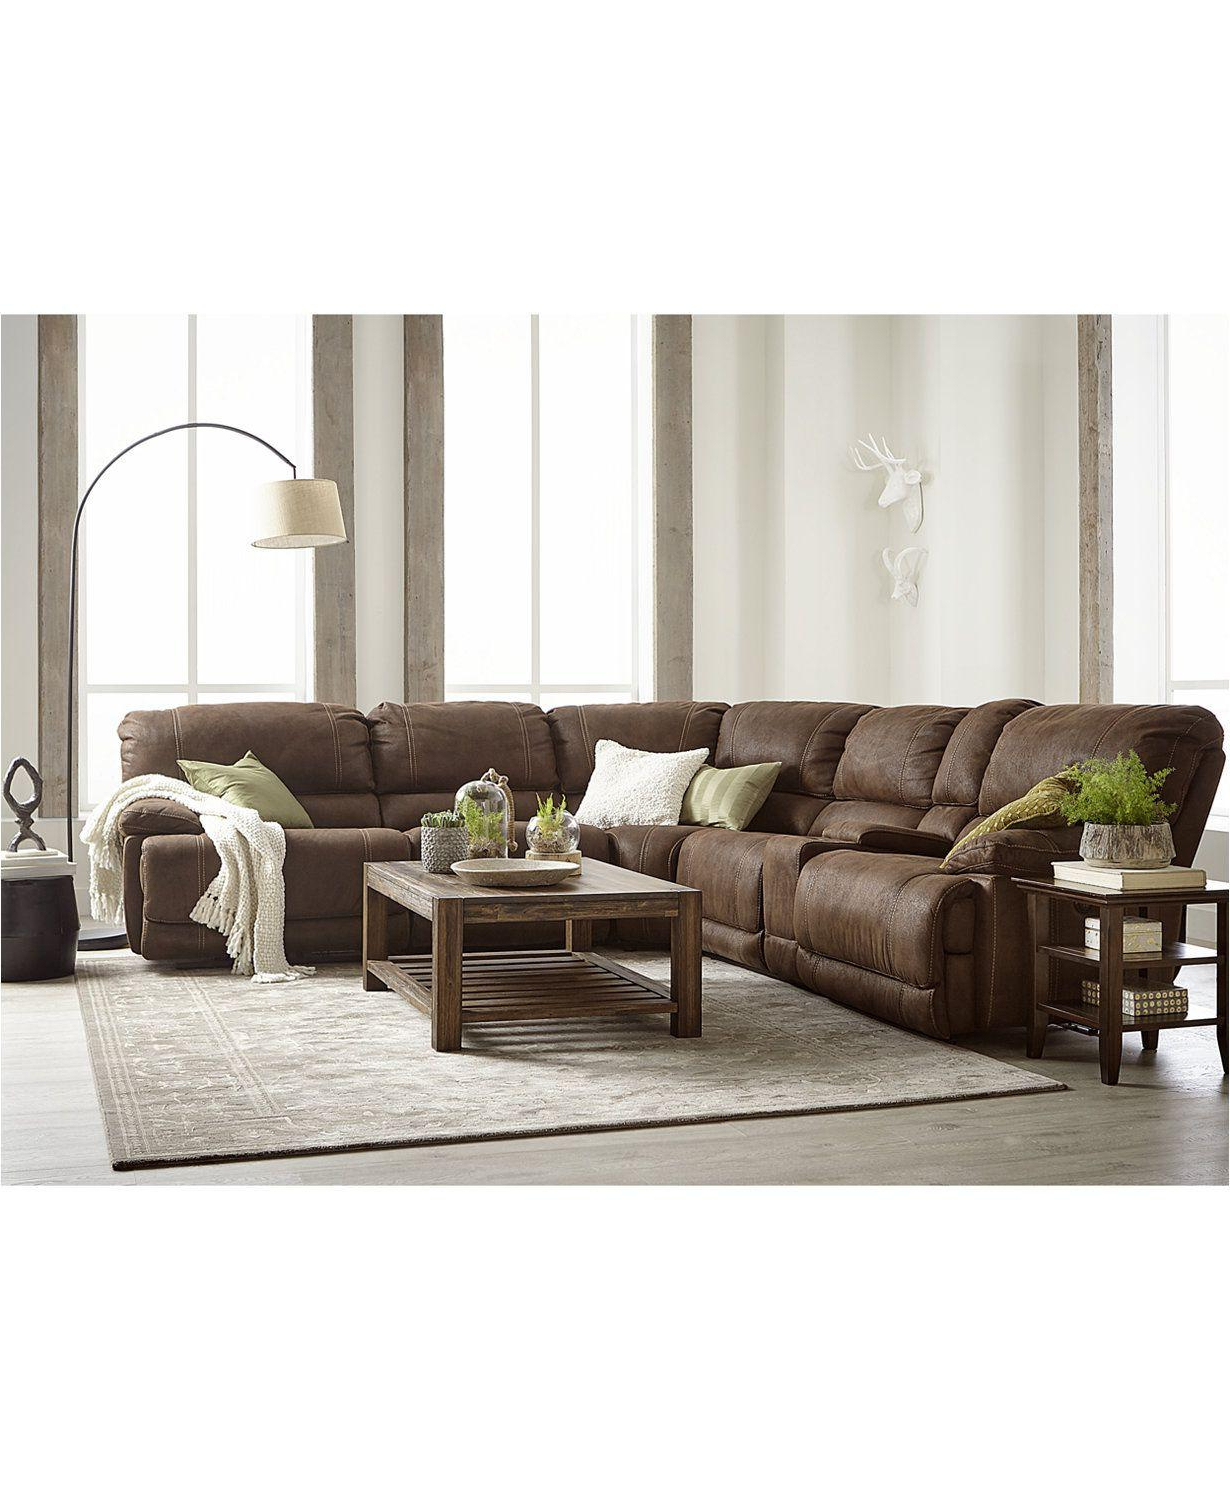 Most Popular Fabric Sectional Sofa With Power Recliner (View 14 of 20)